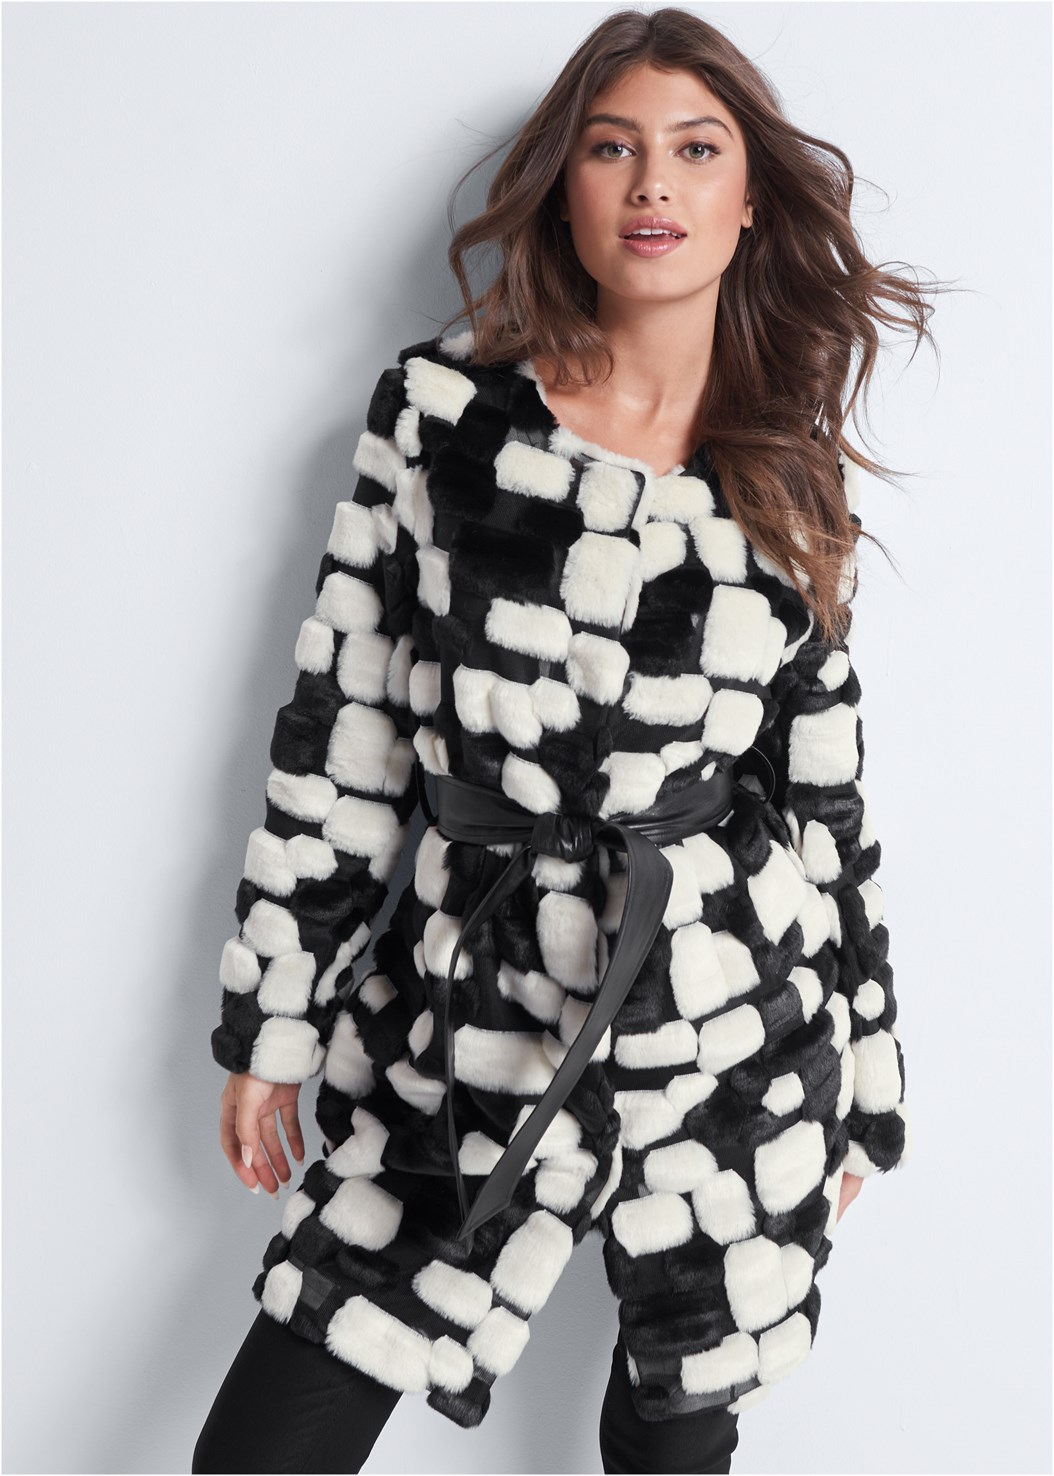 Color Block Faux Fur Coat,Mid Rise Slimming Stretch Jeggings,Buckle Detail Booties